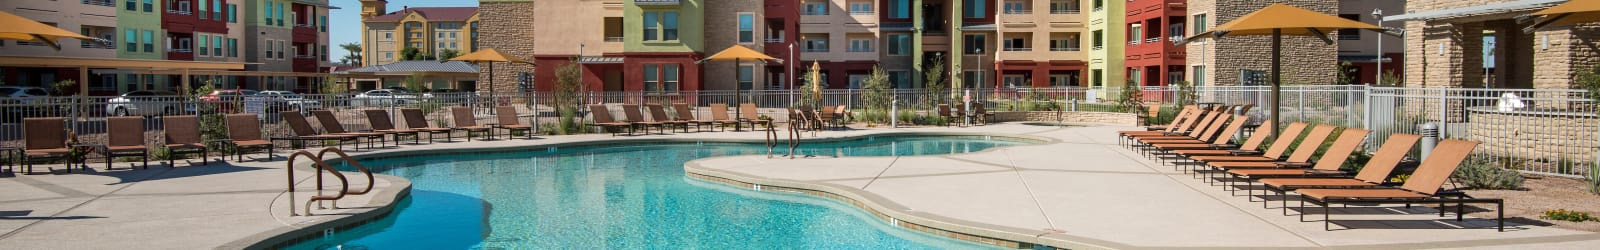 Pet friendly at Southern Avenue Villas in Mesa, Arizona